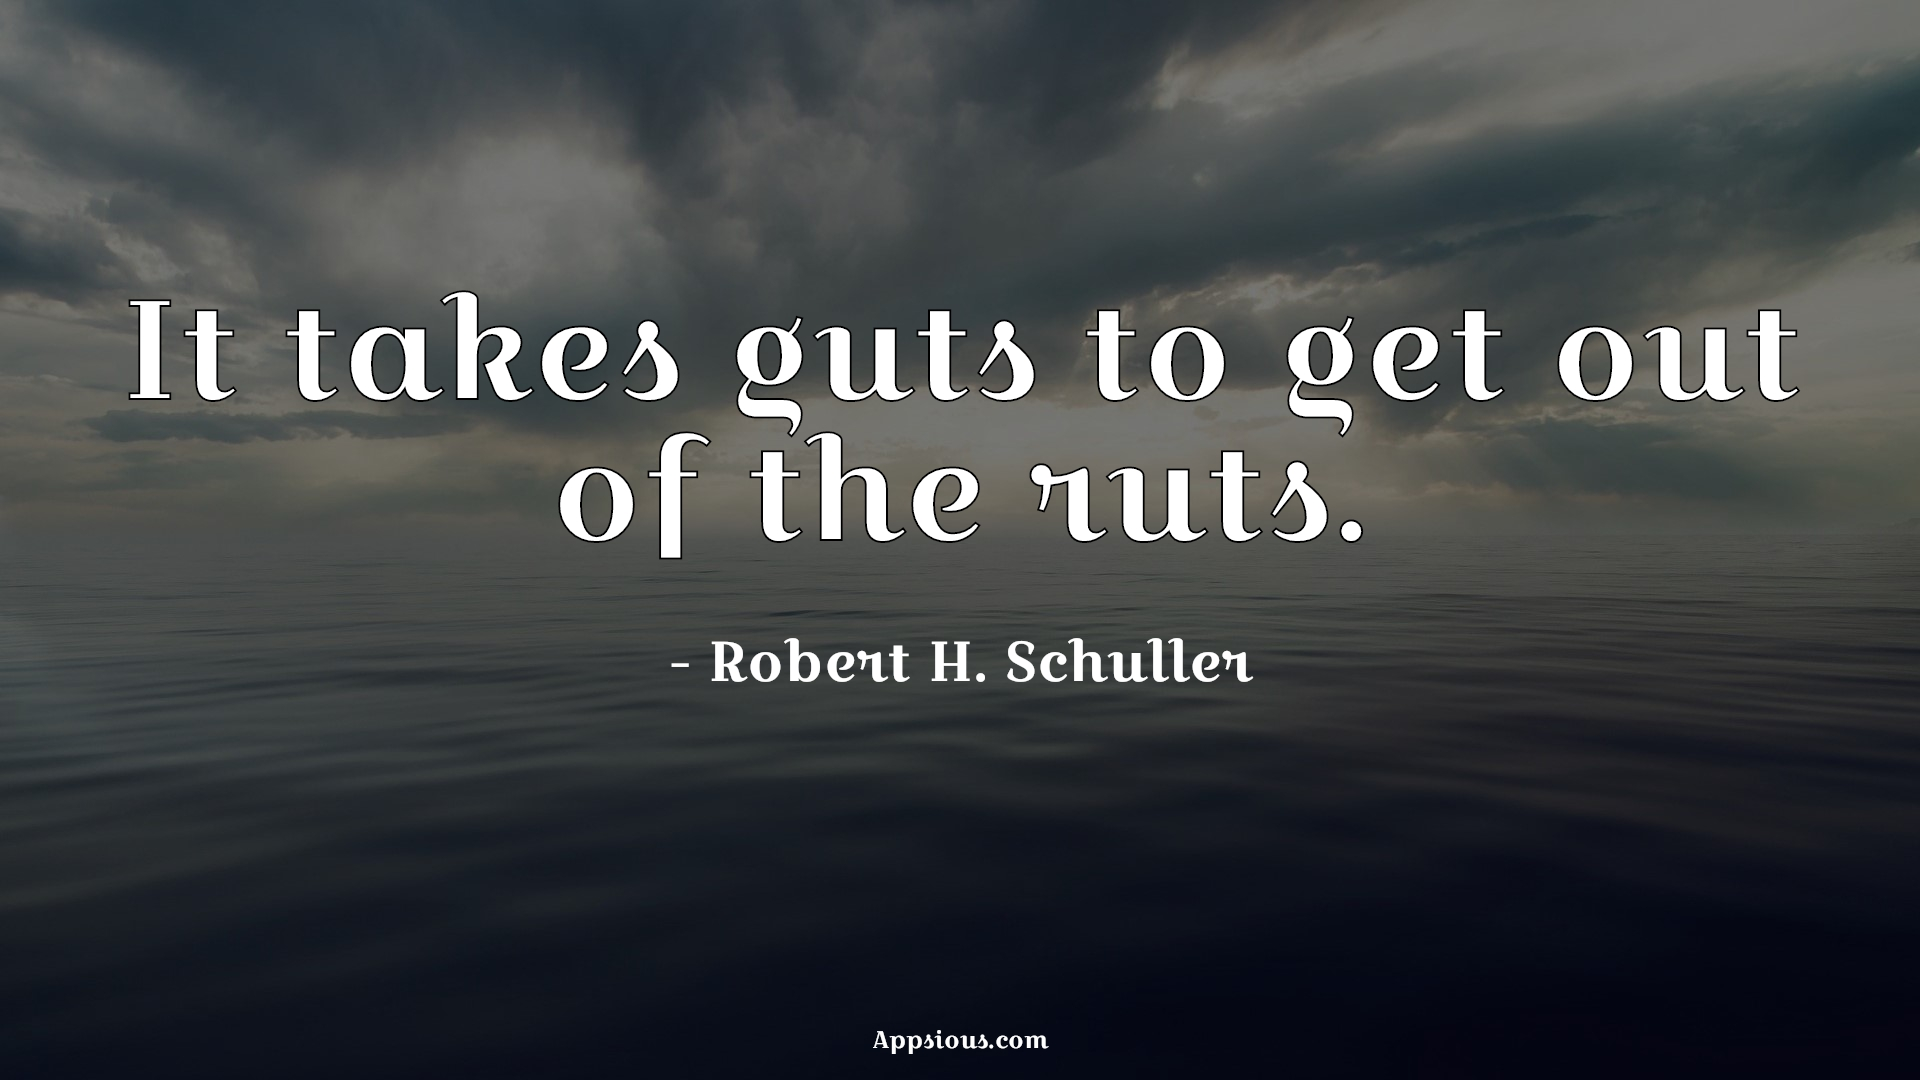 It takes guts to get out of the ruts.